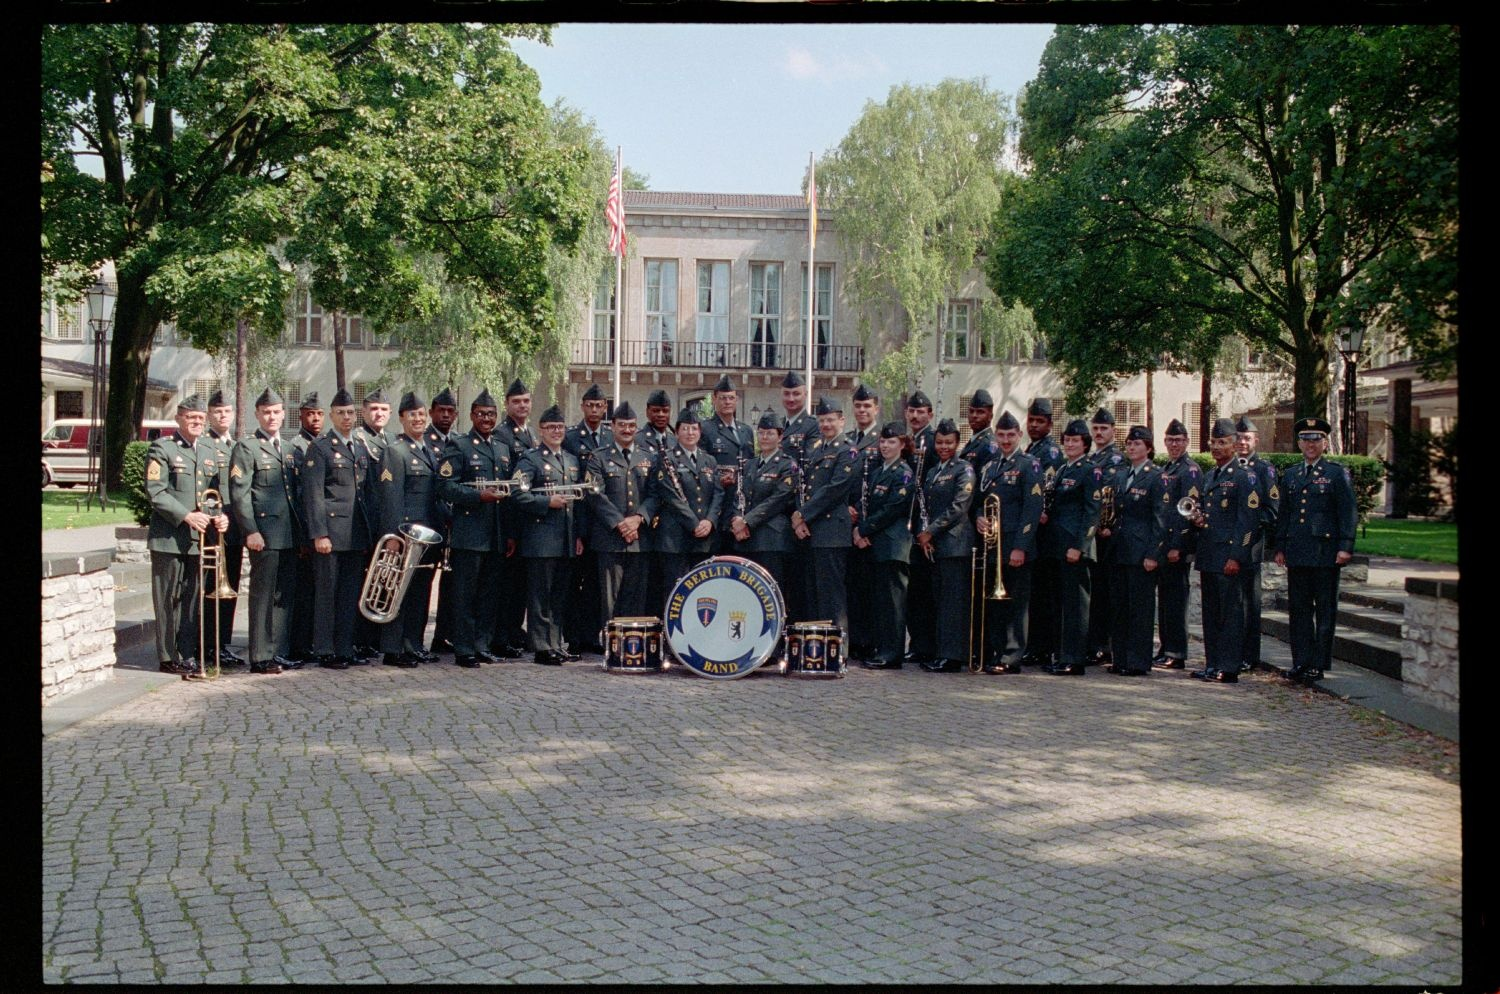 Fotografie: 298th U.S. Army Band in den Lucius D. Clay Headquarters in Berlin-Dahlem (AlliiertenMuseum/U.S. Army Photograph Public Domain Mark)